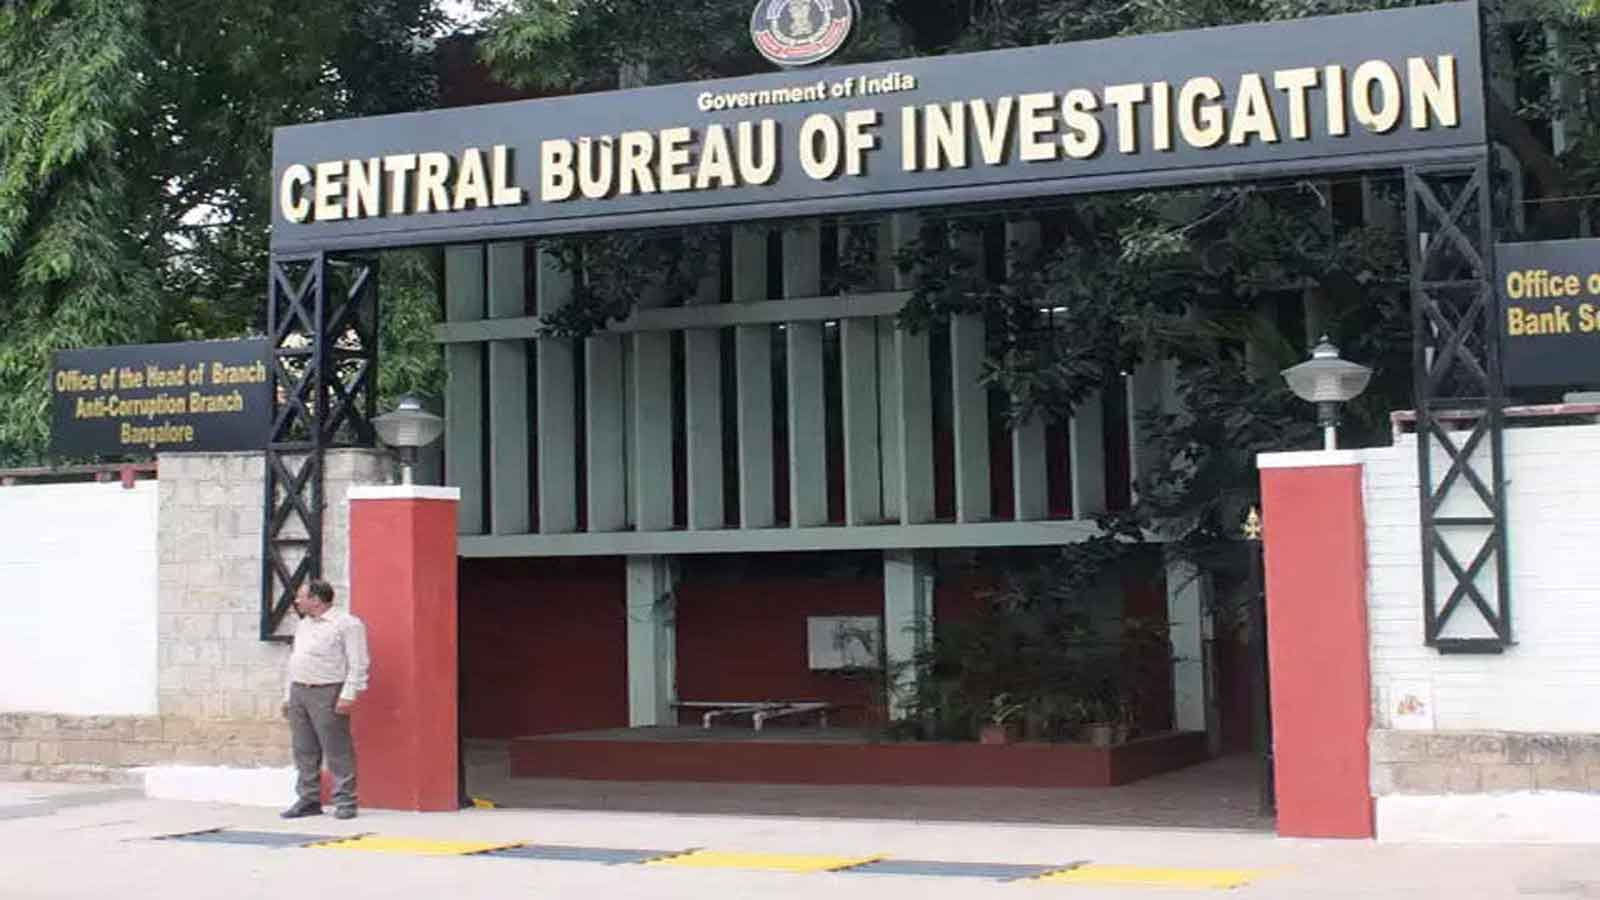 cbi-files-fir-against-its-own-officials-for-receiving-kickbacks-from-firms-accused-of-siphoning-public-money